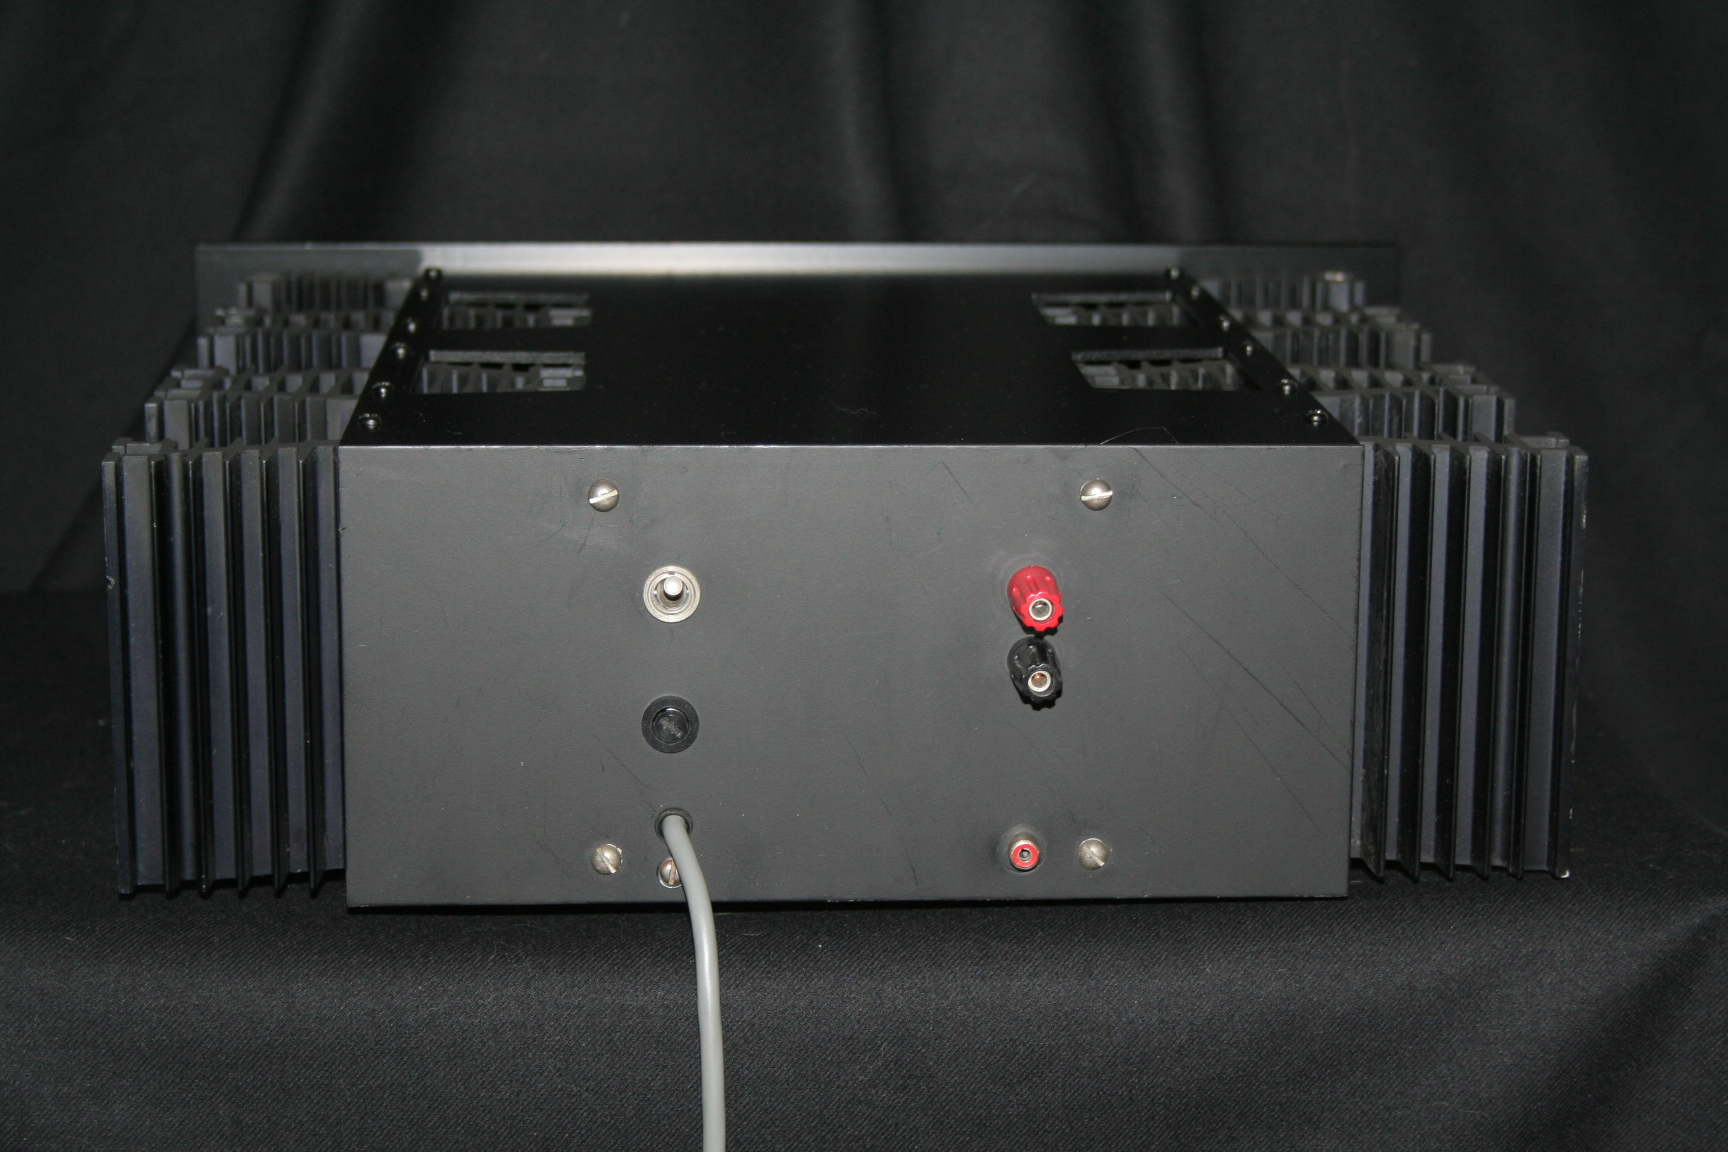 Ap4 Power Amplifier Class A Amplifiers They Could Drive Anything 90 Amps Peak Current Rating And If My Memory Serves Me Well The Full Output Not All Was Over 150 Watts Into